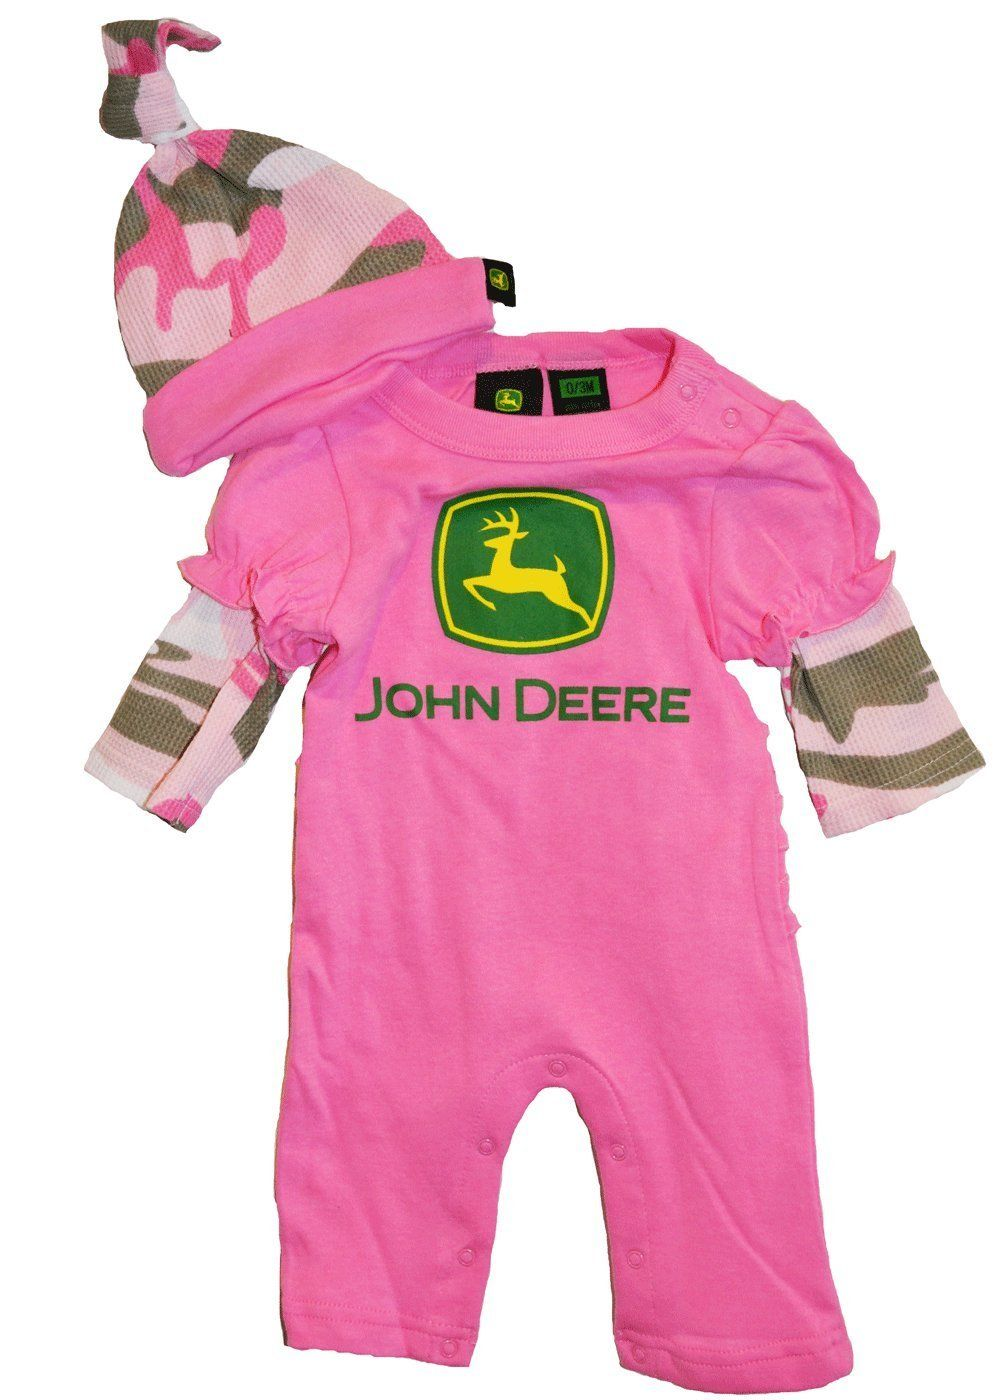 John Deere Baby Clothes For Girls Pink Camo Follow With Style